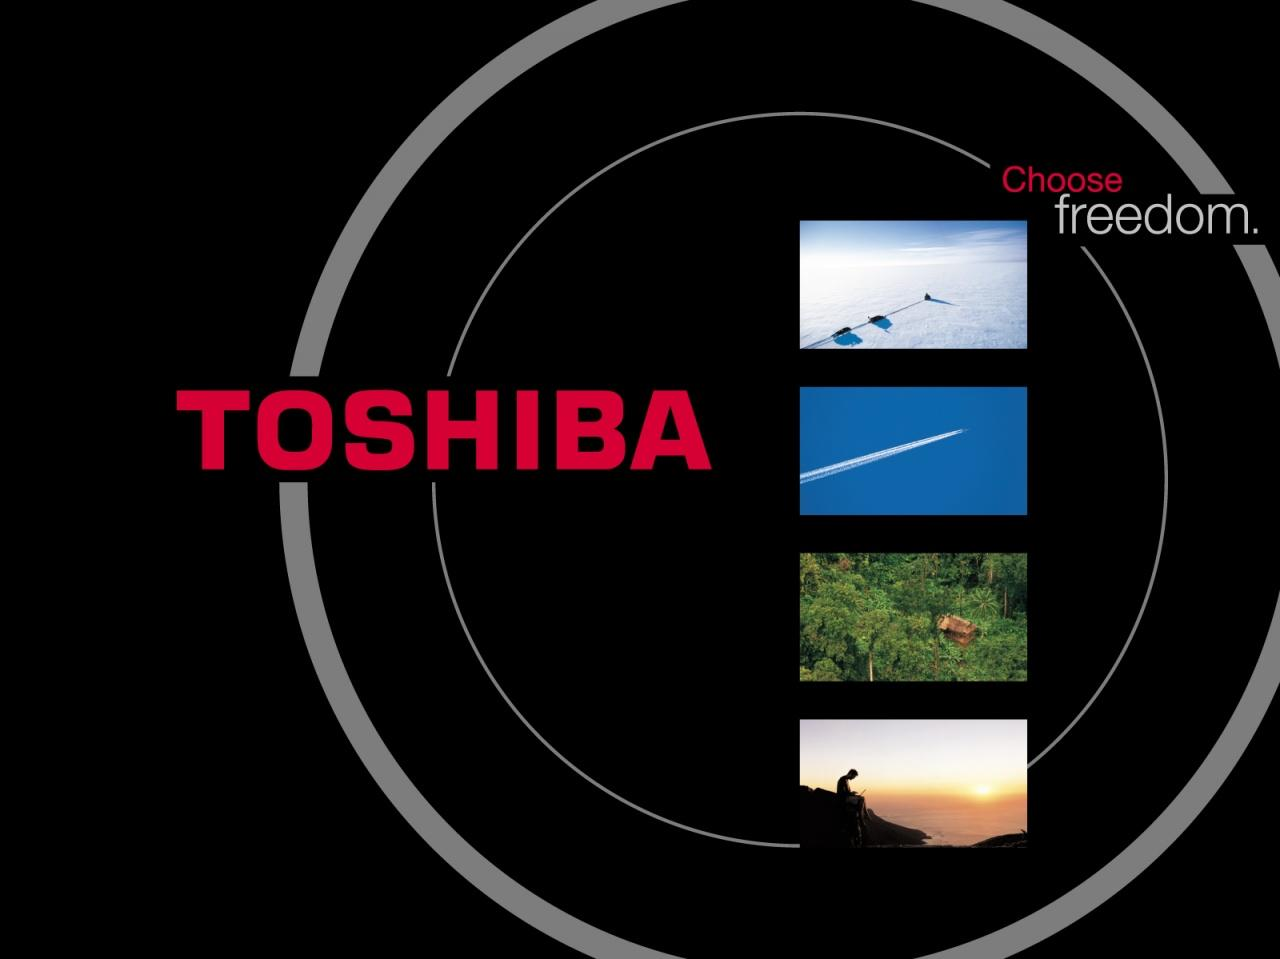 Pin Toshiba Wallpaper Download Windows Vista Floral Blue 1280x959